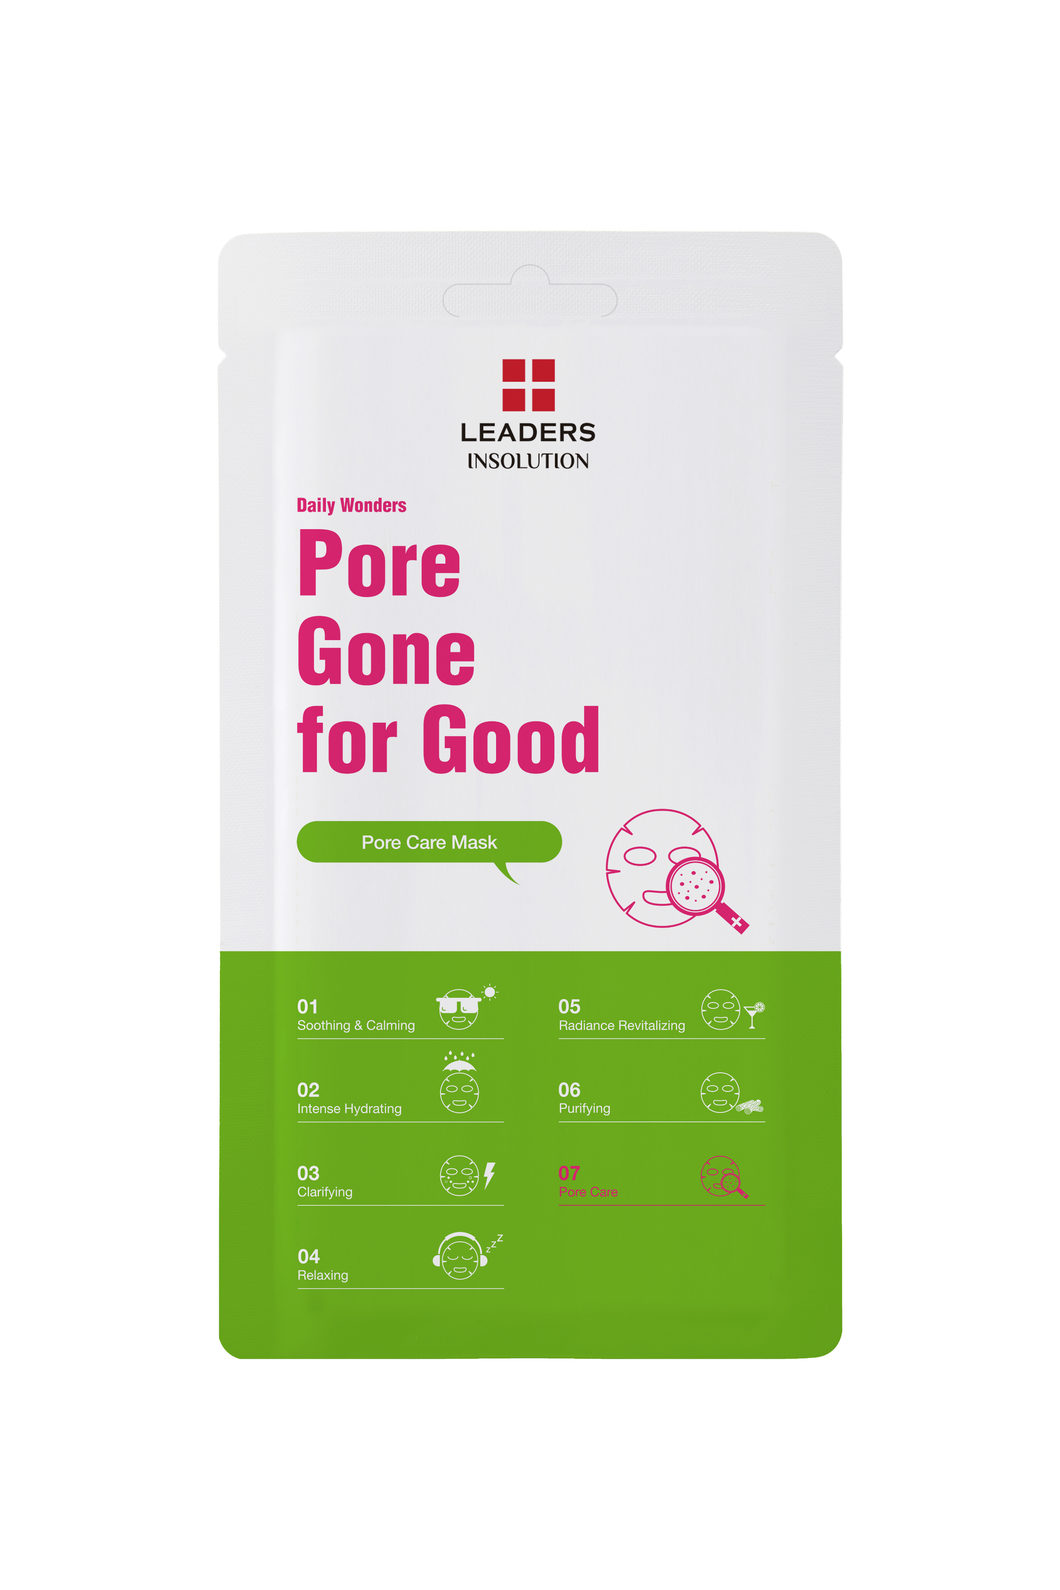 Pore Gone for Good Pore Care Mask